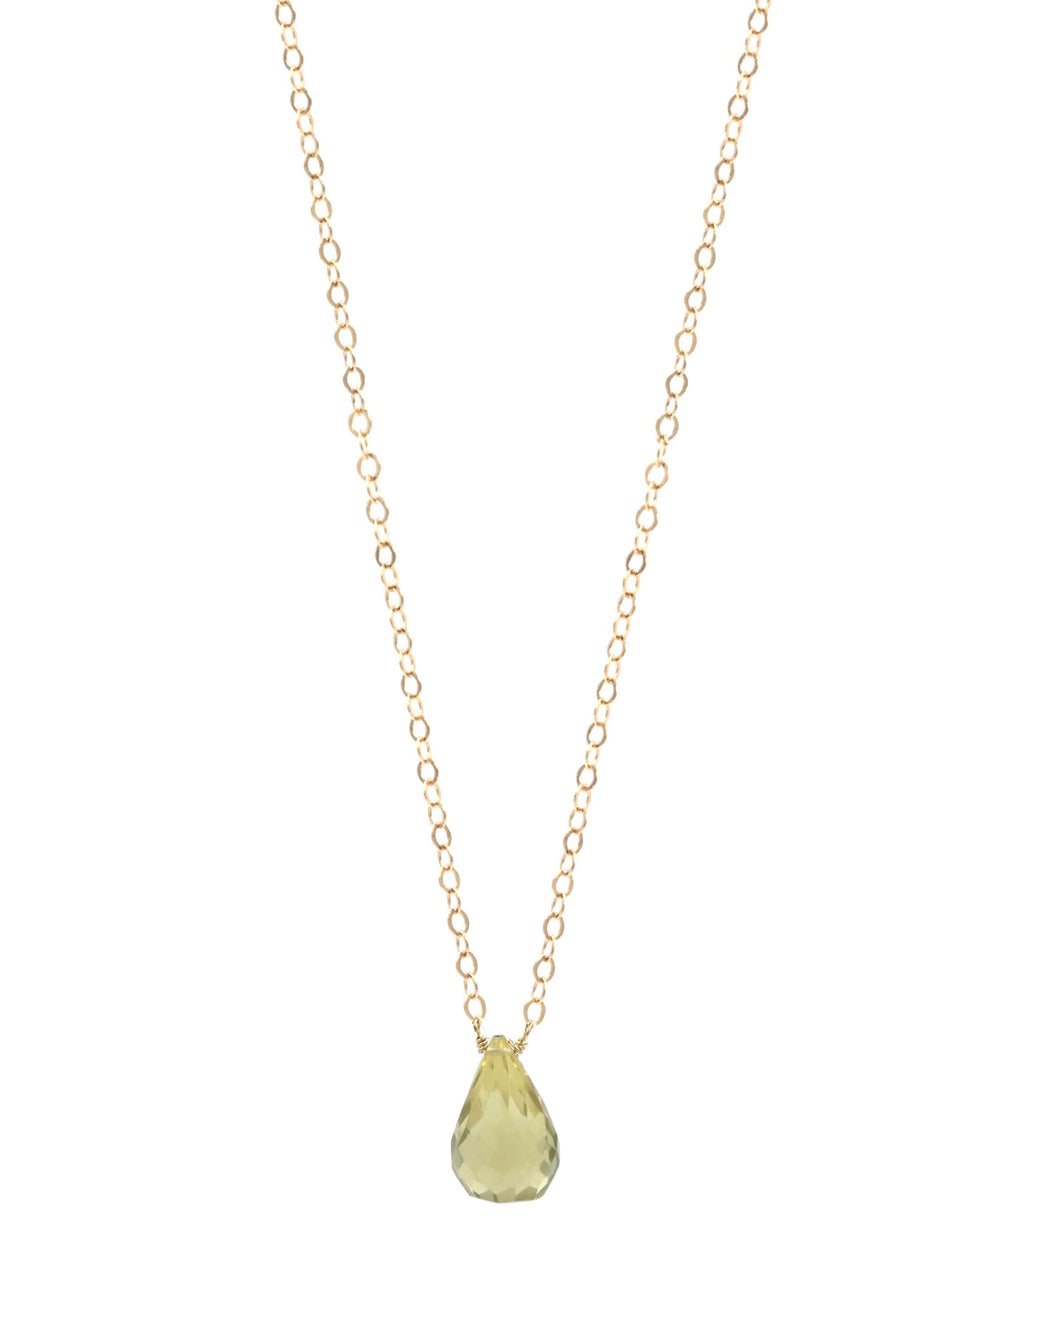 Lemon Citrine Drop Necklace